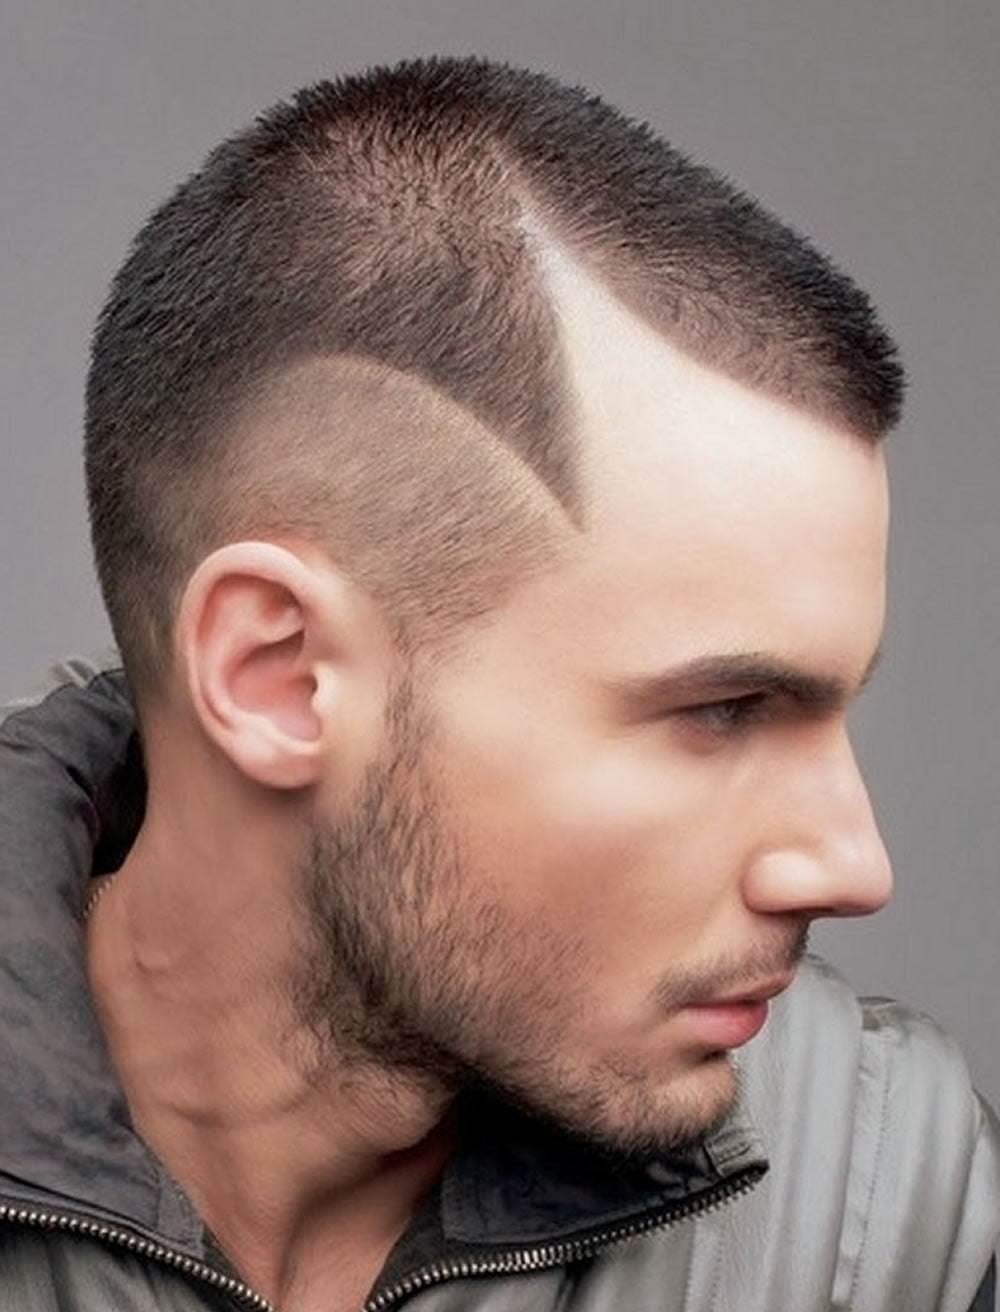 cool hairstyles for men 2019